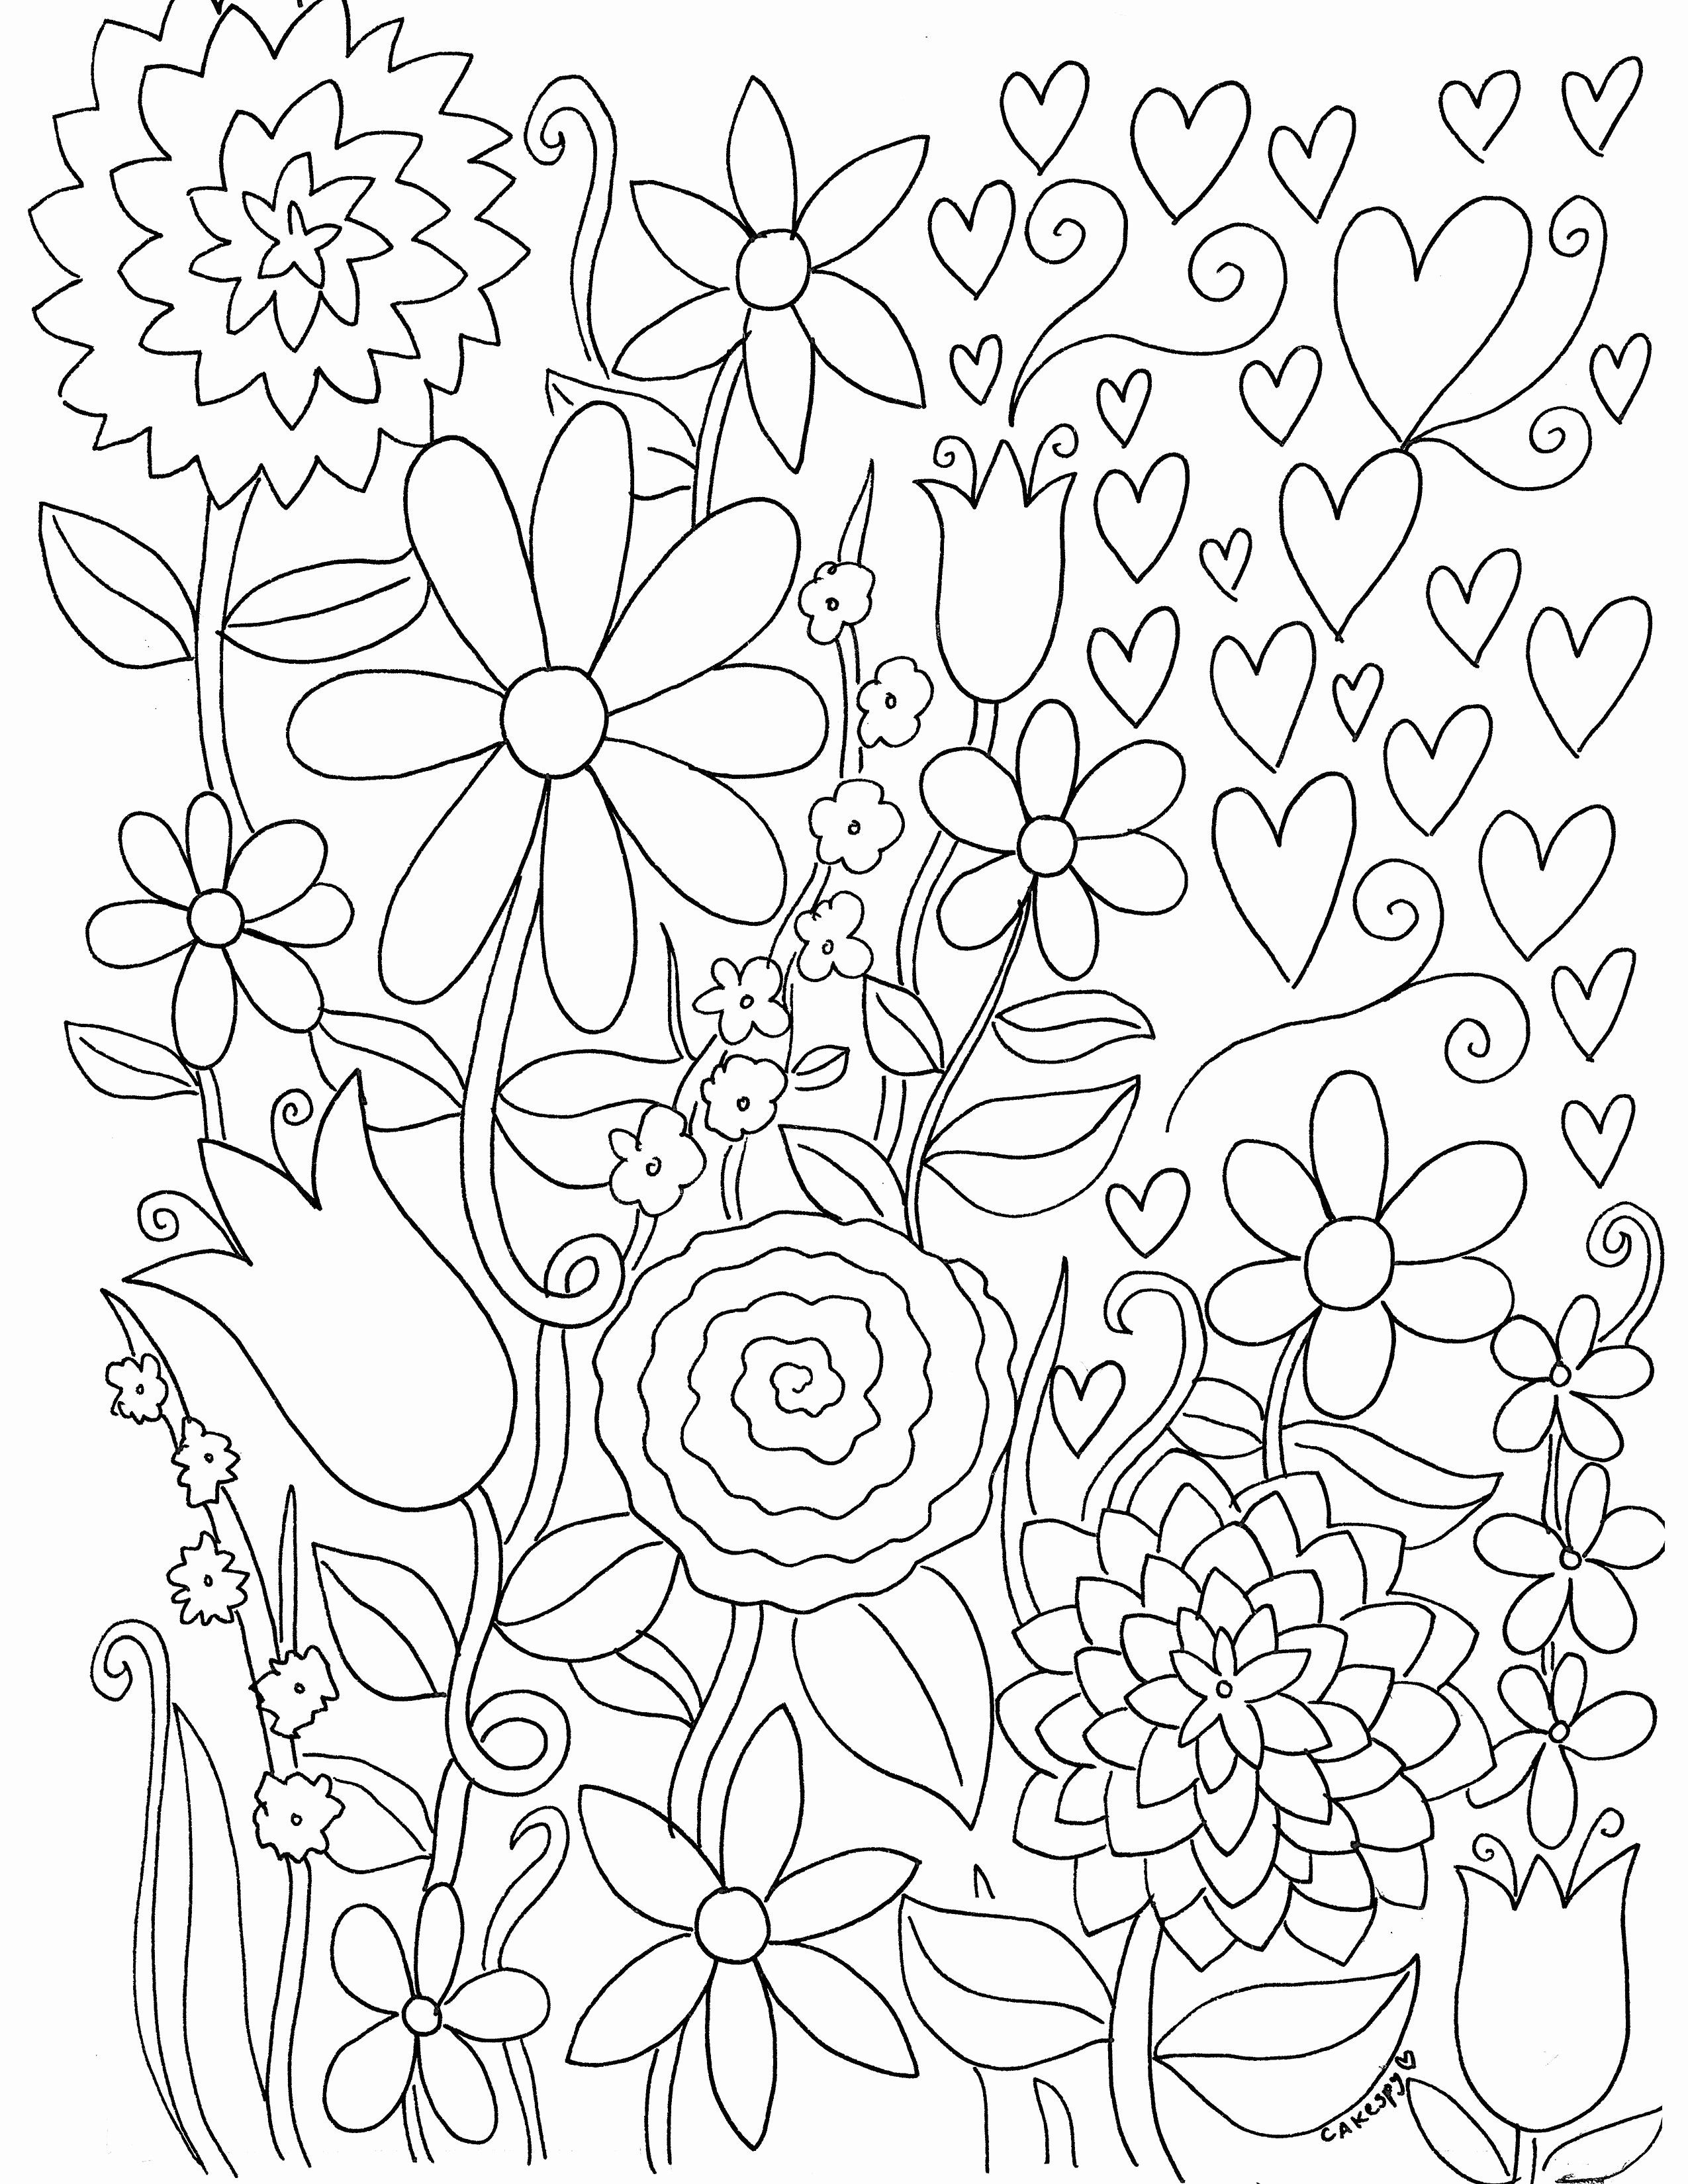 Drawing Book Outline In 2020 Christmas Coloring Books, Adult